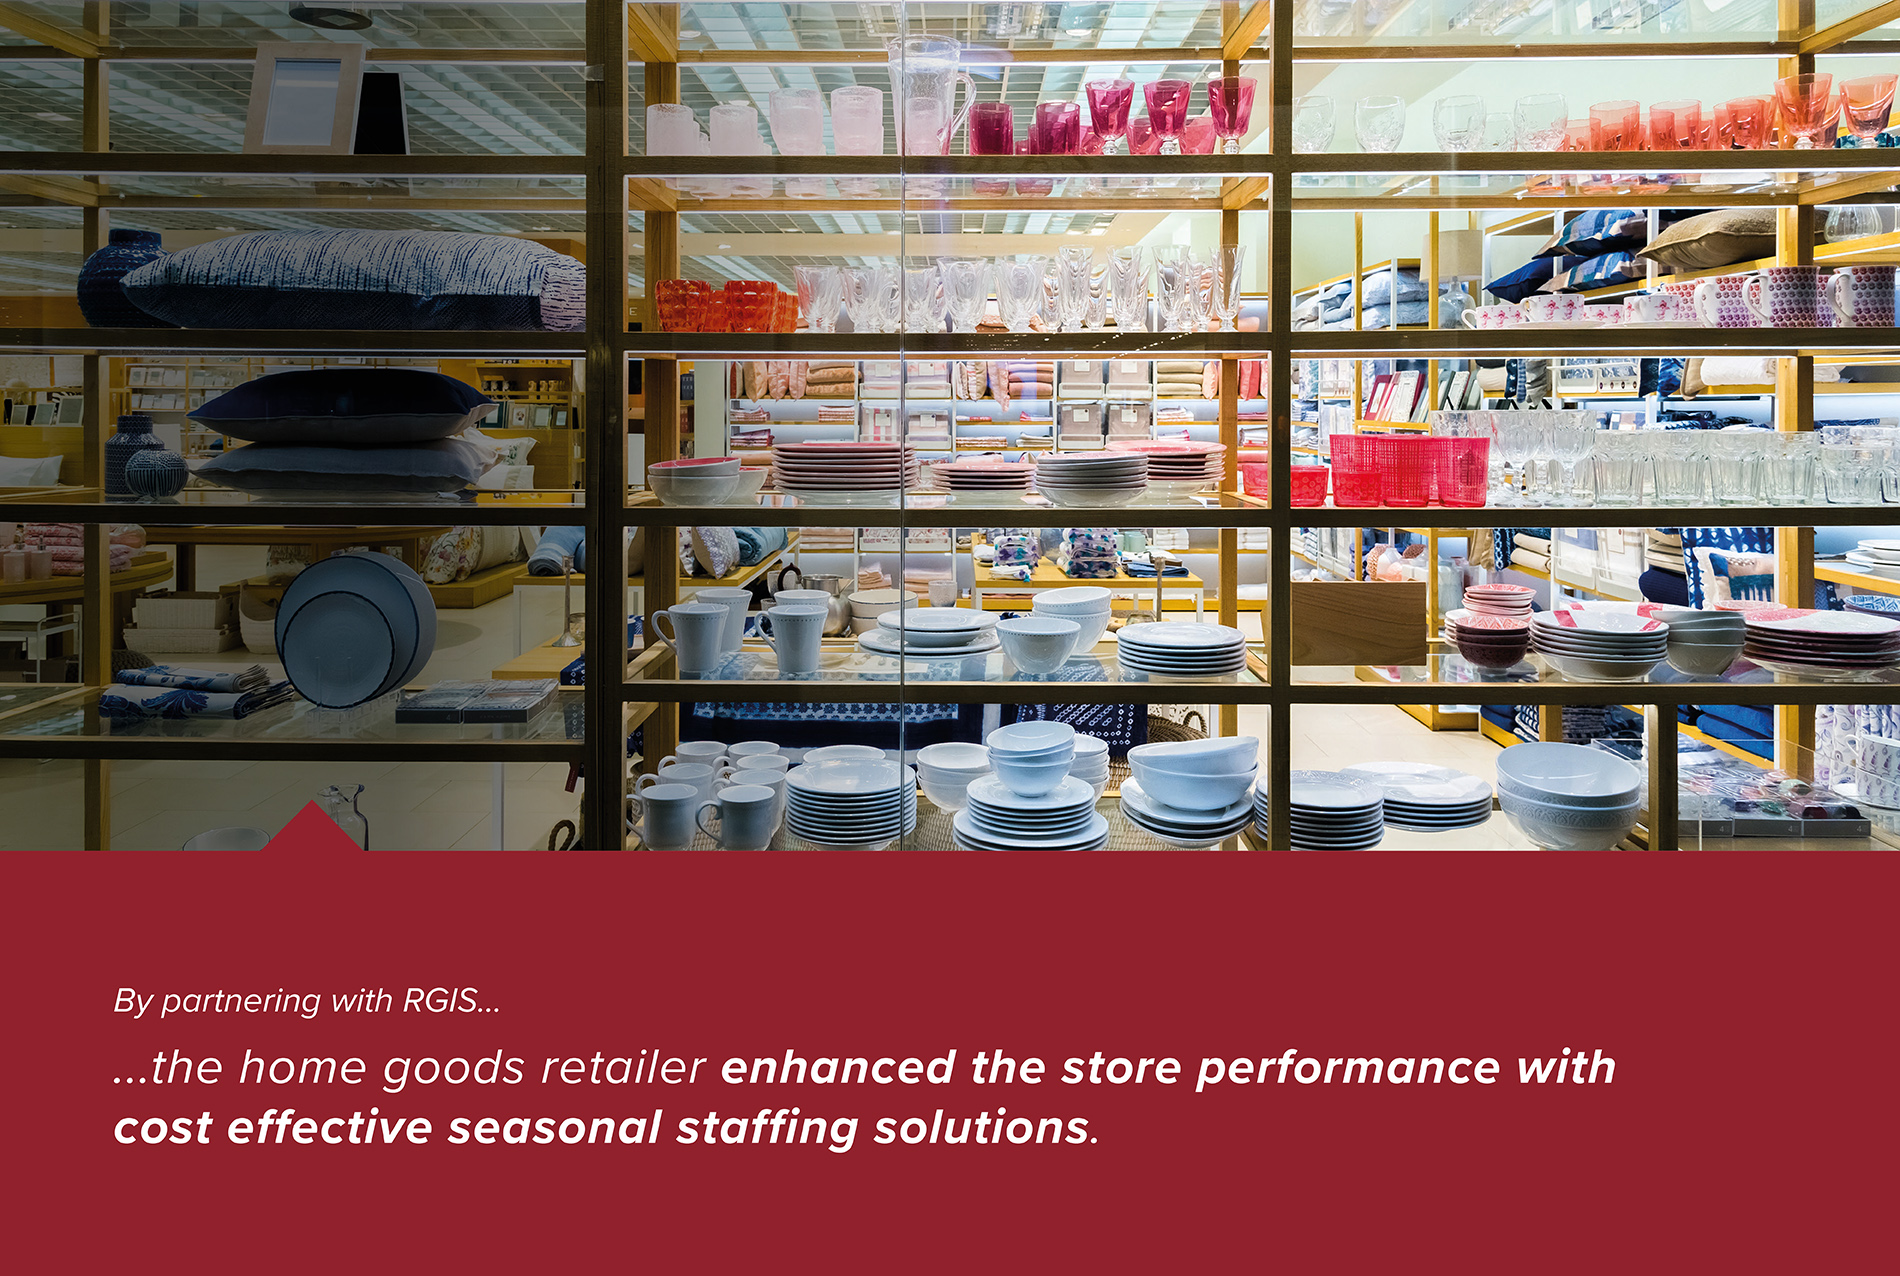 Home Goods Retailer Seasonal Staff Support